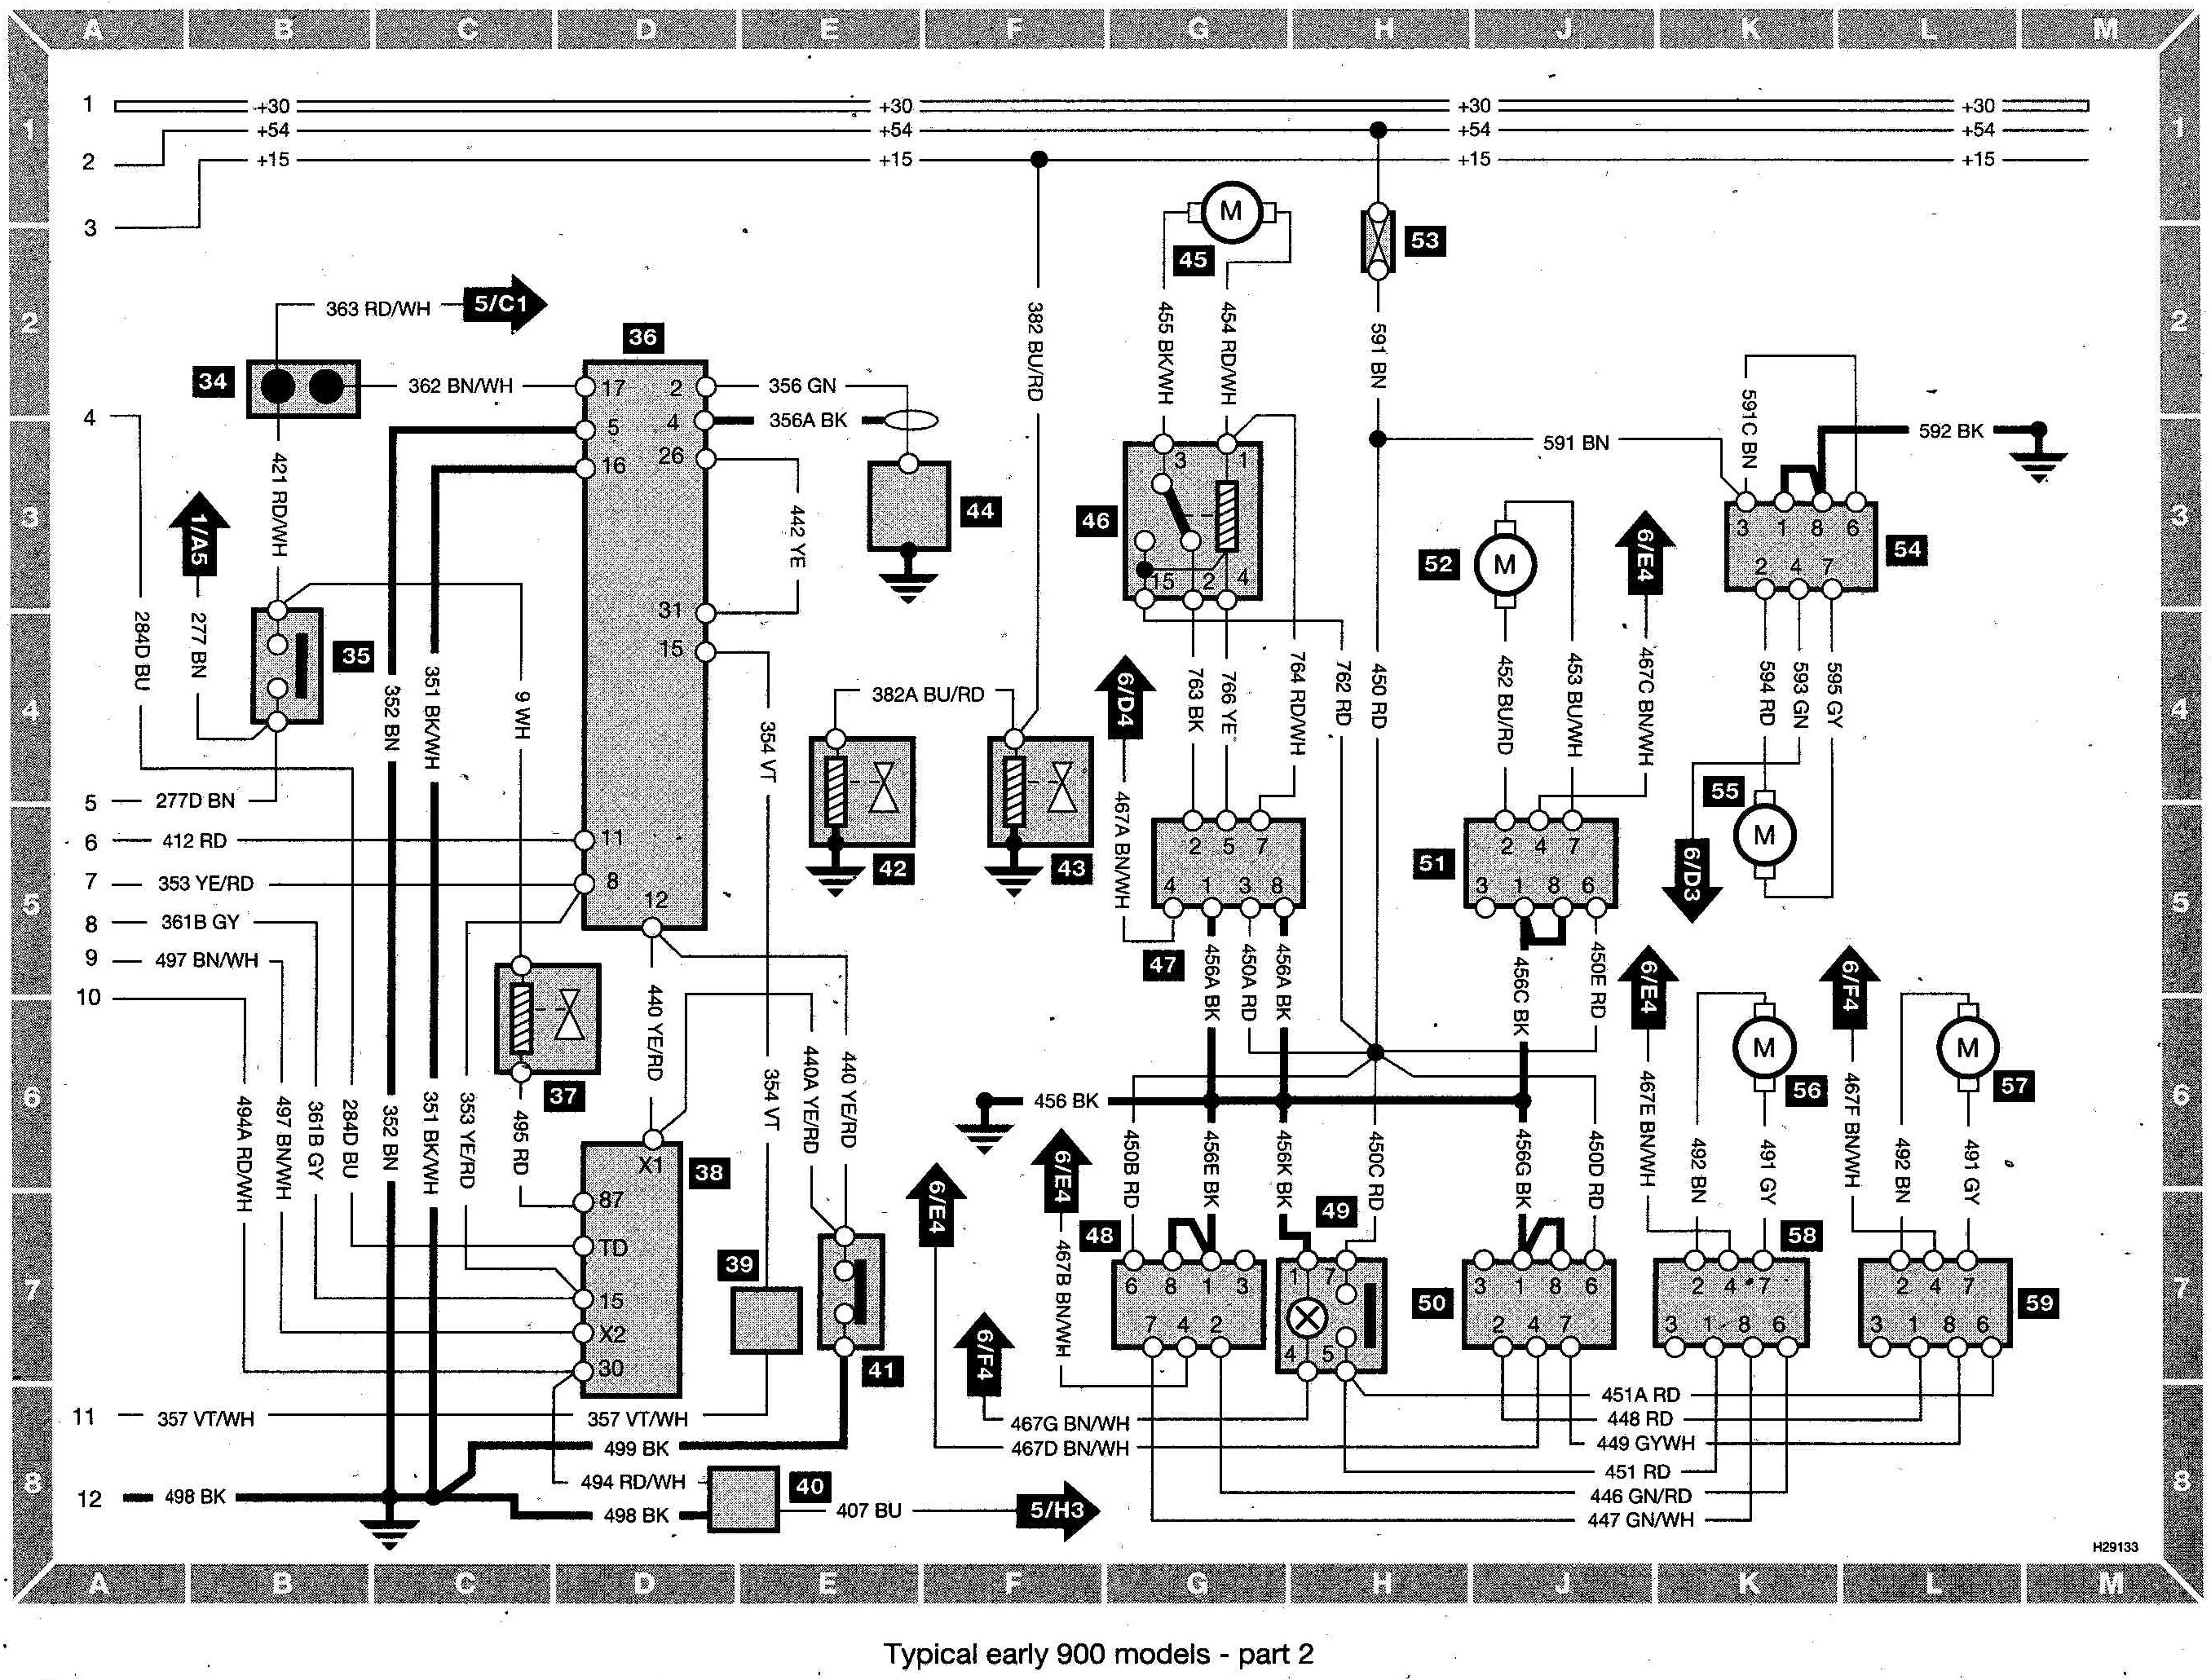 saab 9 3 engine diagram 1 z rig 2000 vacuum free image for